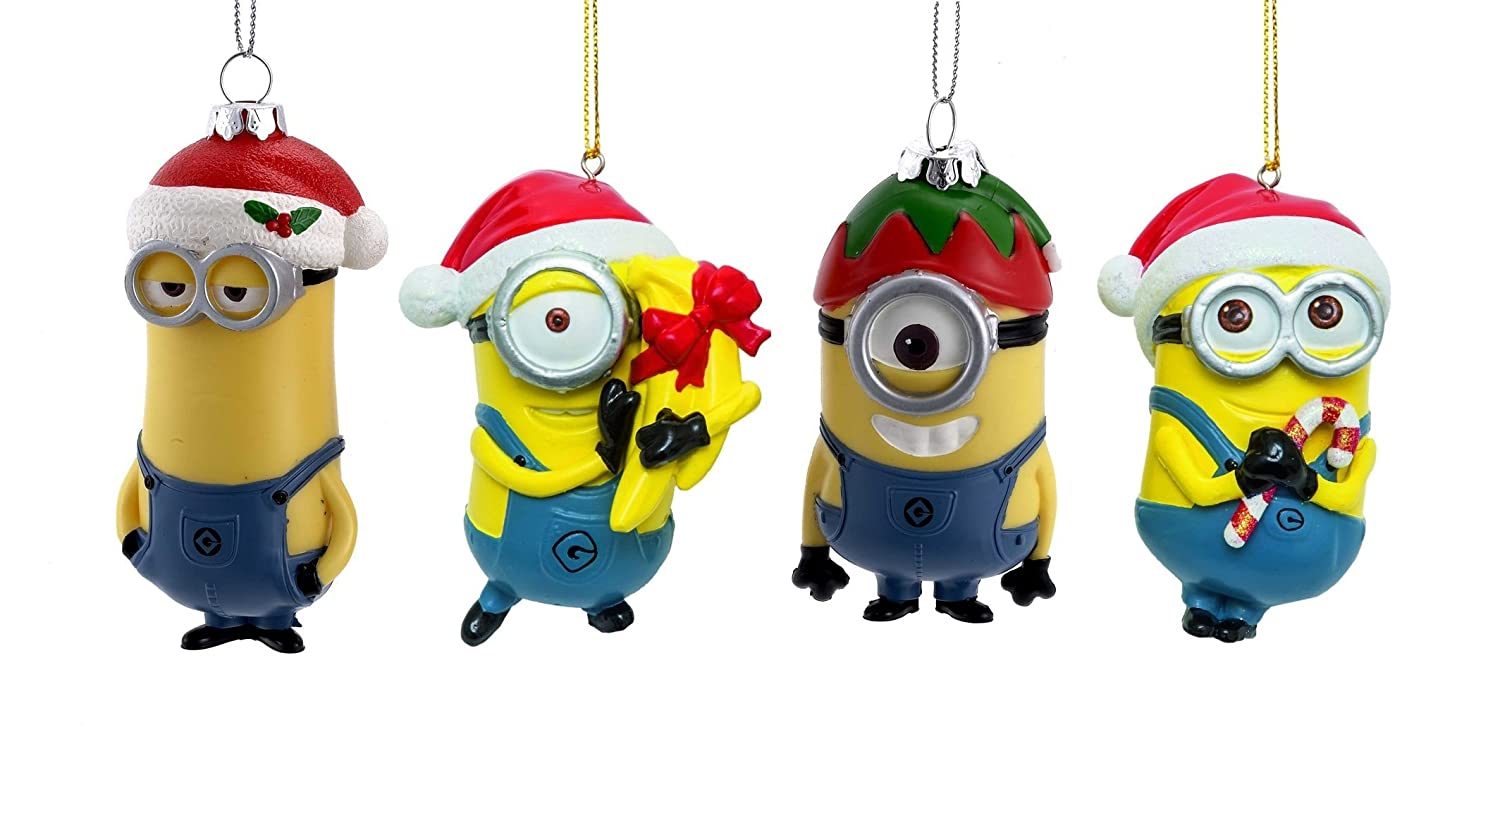 Minions Christmas.Kurt Adler Despicable Me Dave And Carl With Santa Hats Minions Christmas Ornament Set Of 4